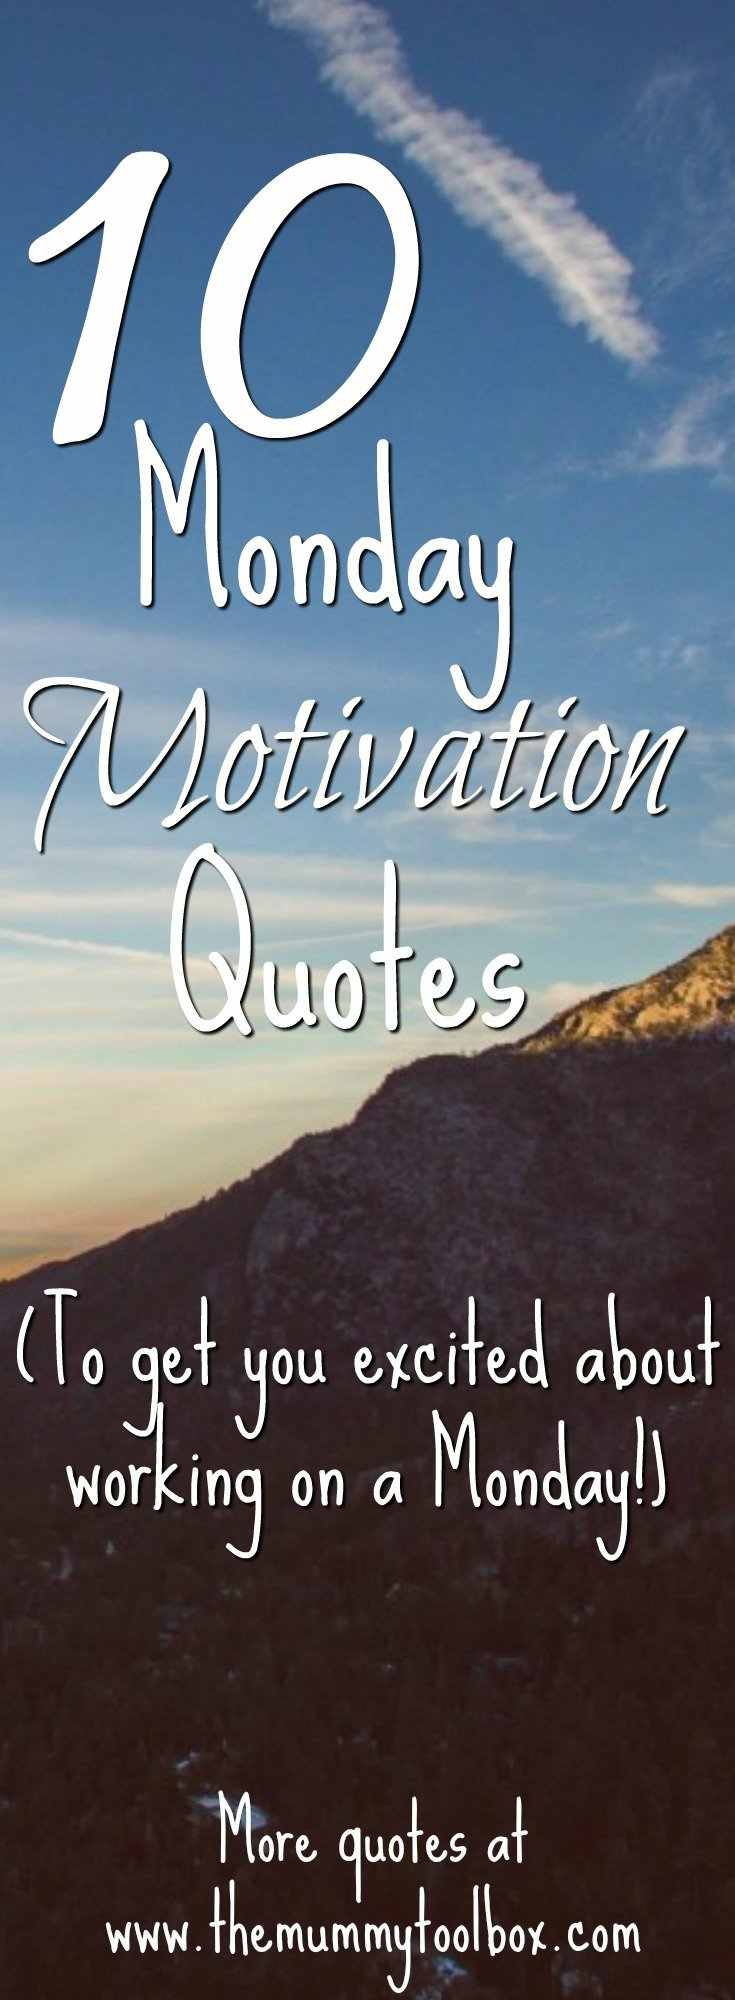 10 quotes to get you excited about work on a monday! plus loads more inspiration, motivation and fitspiration.